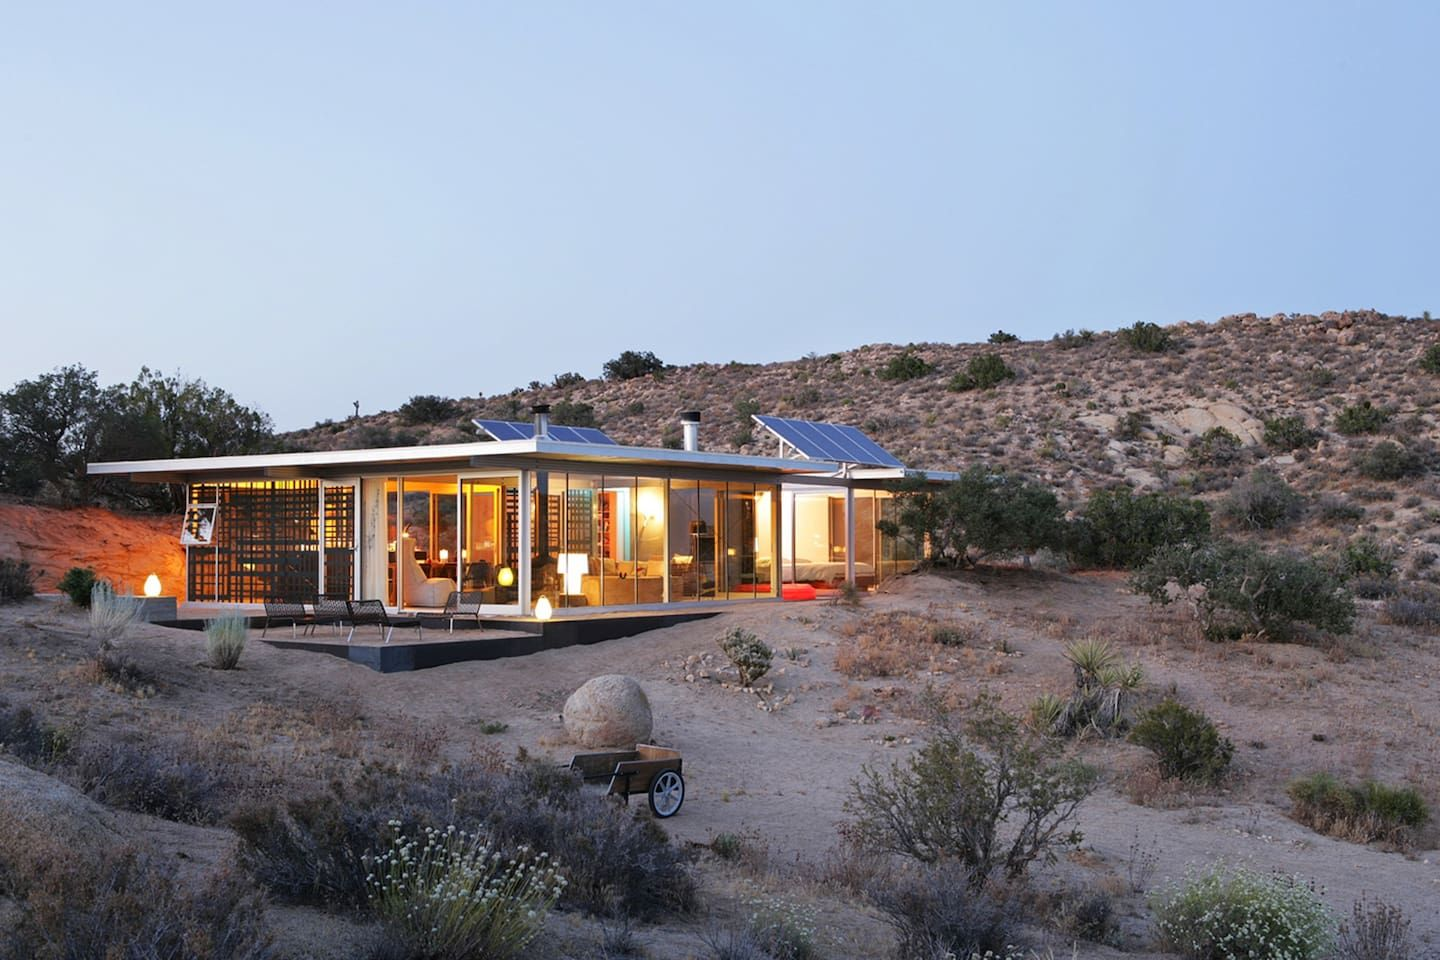 House in Pioneertown, United States. The Off-grid itHouse brings ...